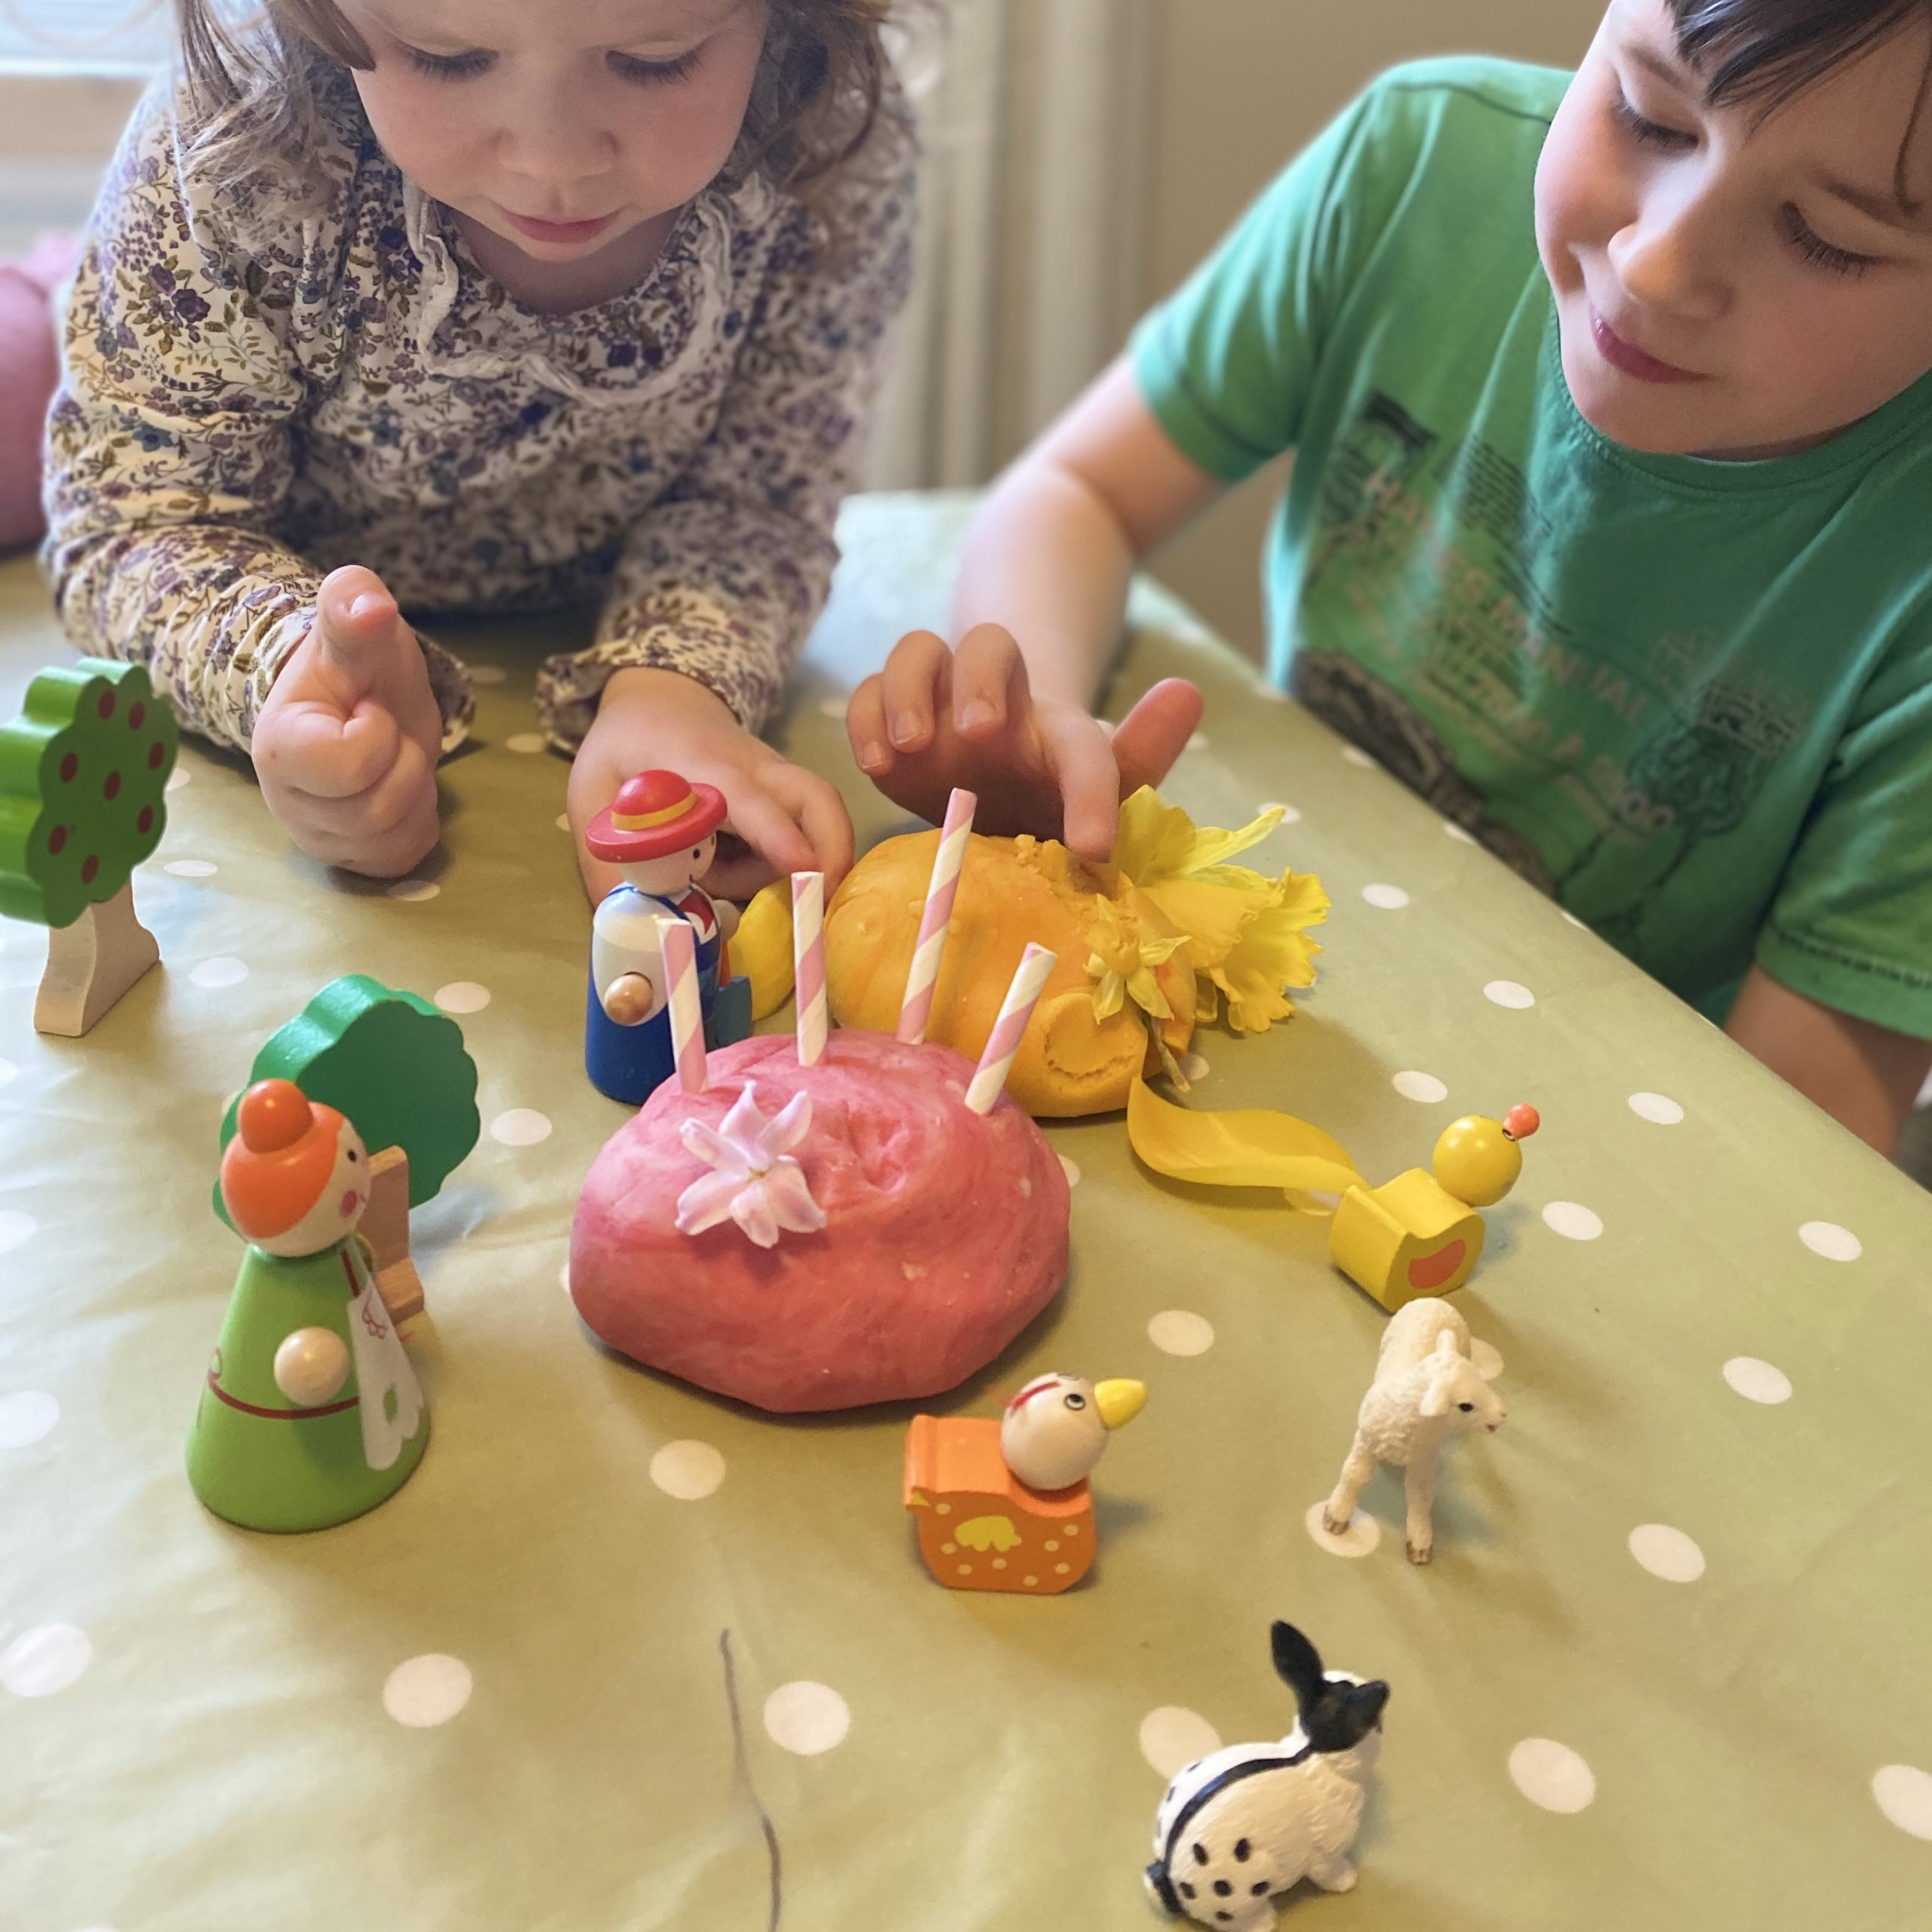 Play dough with 2 children playing